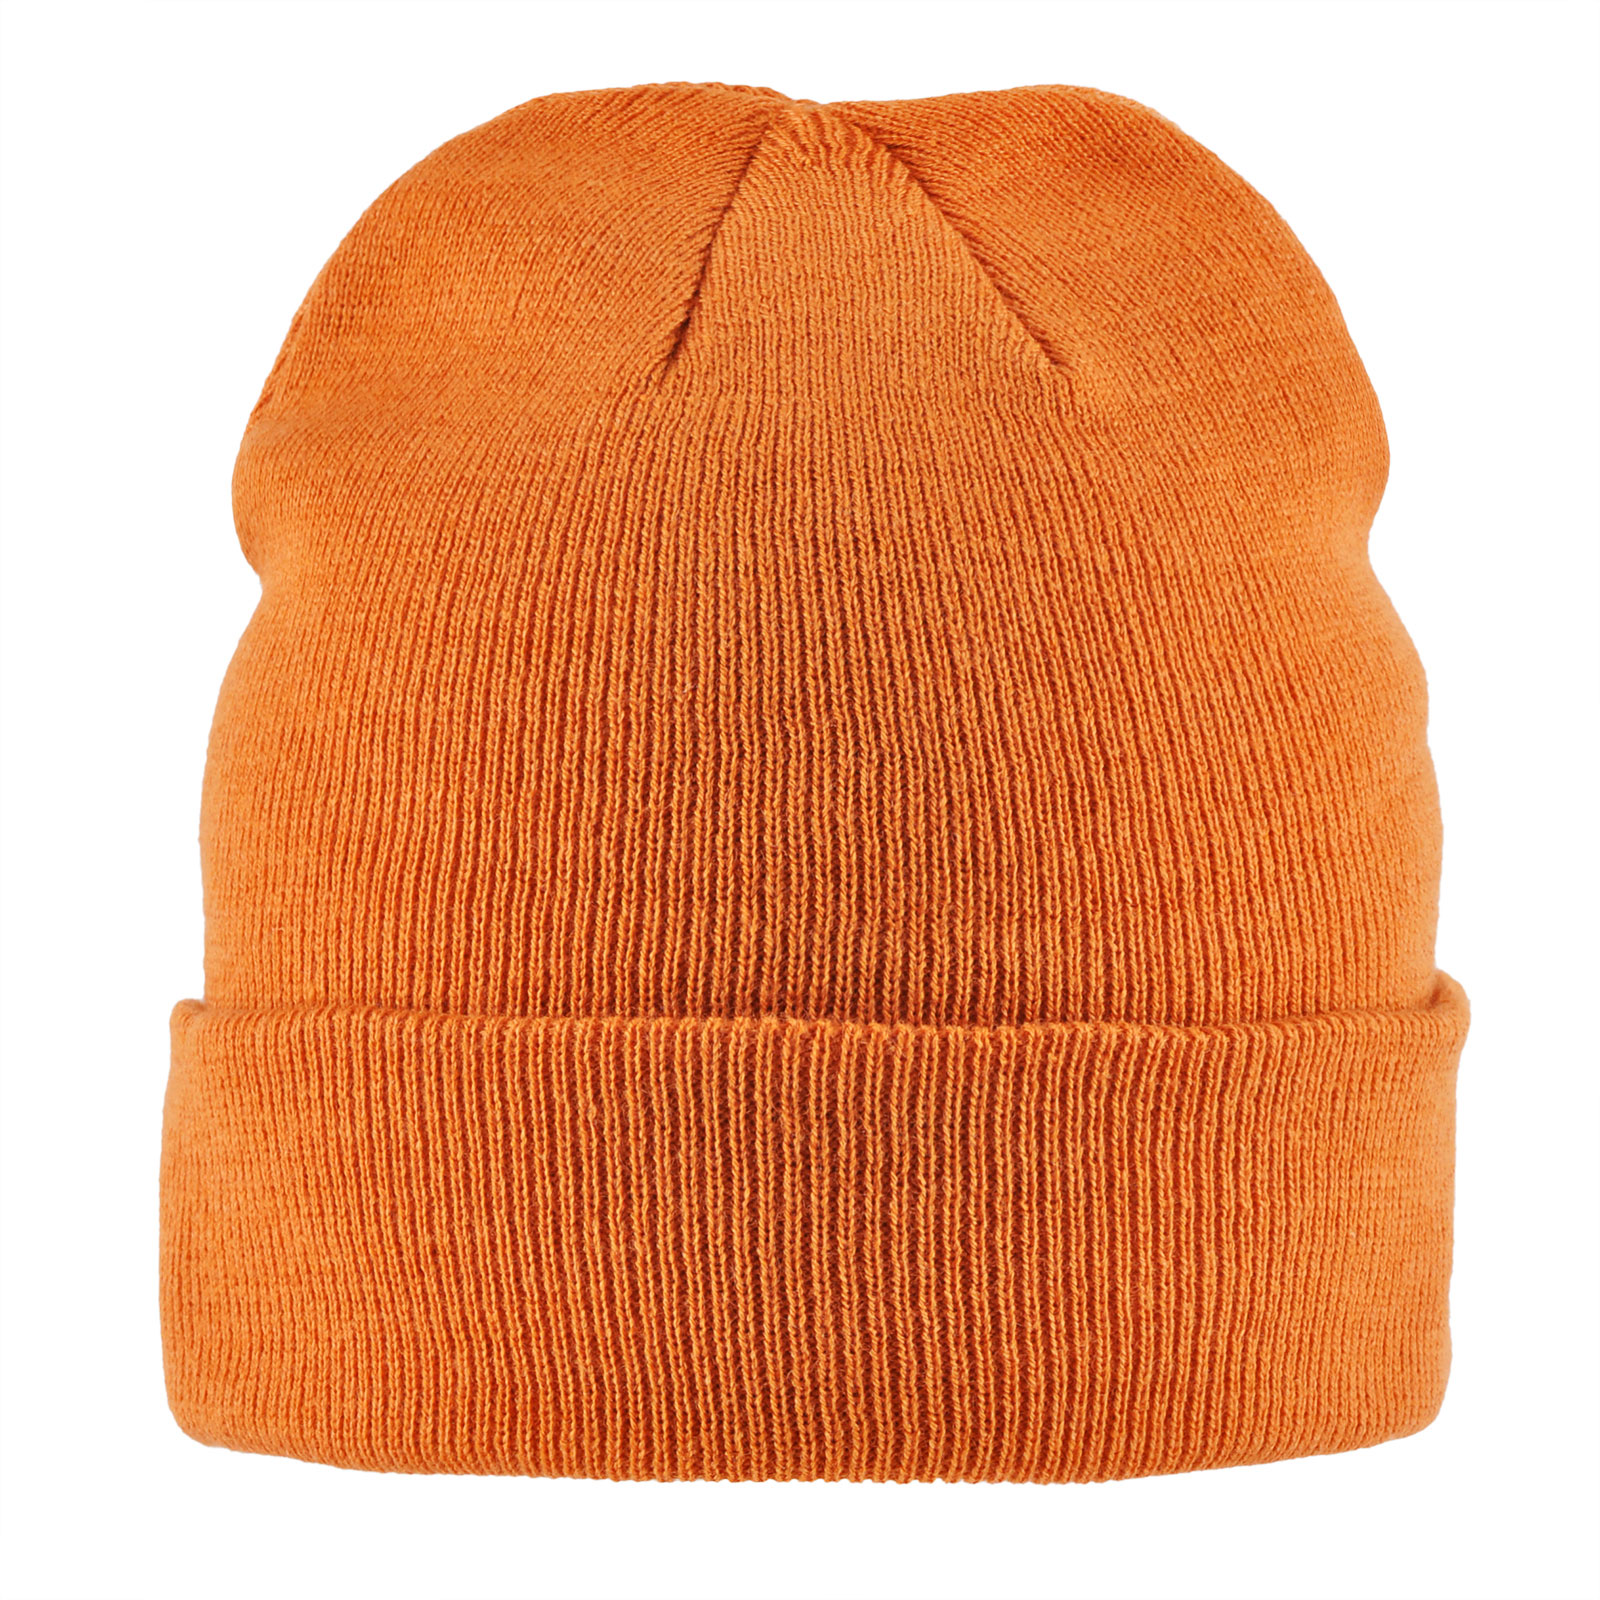 CP-00383-F16-bonnet-court-orange